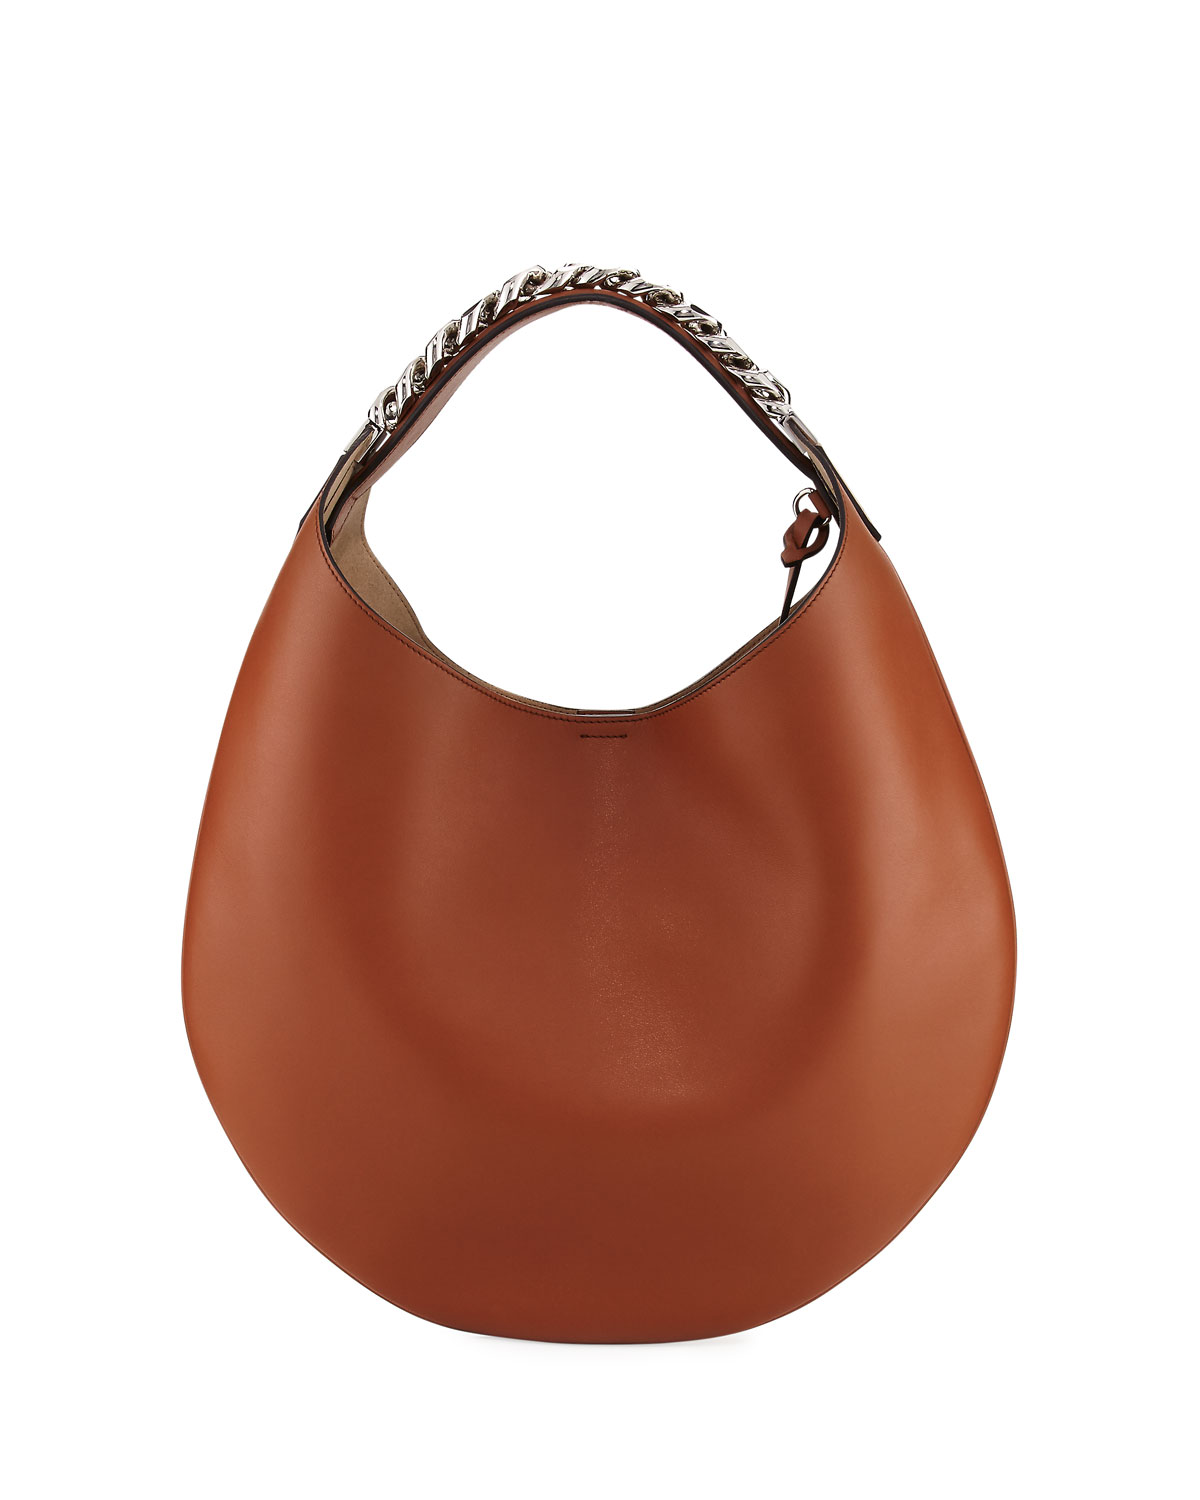 Givenchy Infinity Small Leather Chain Hobo Bag  91bb43467a4c9